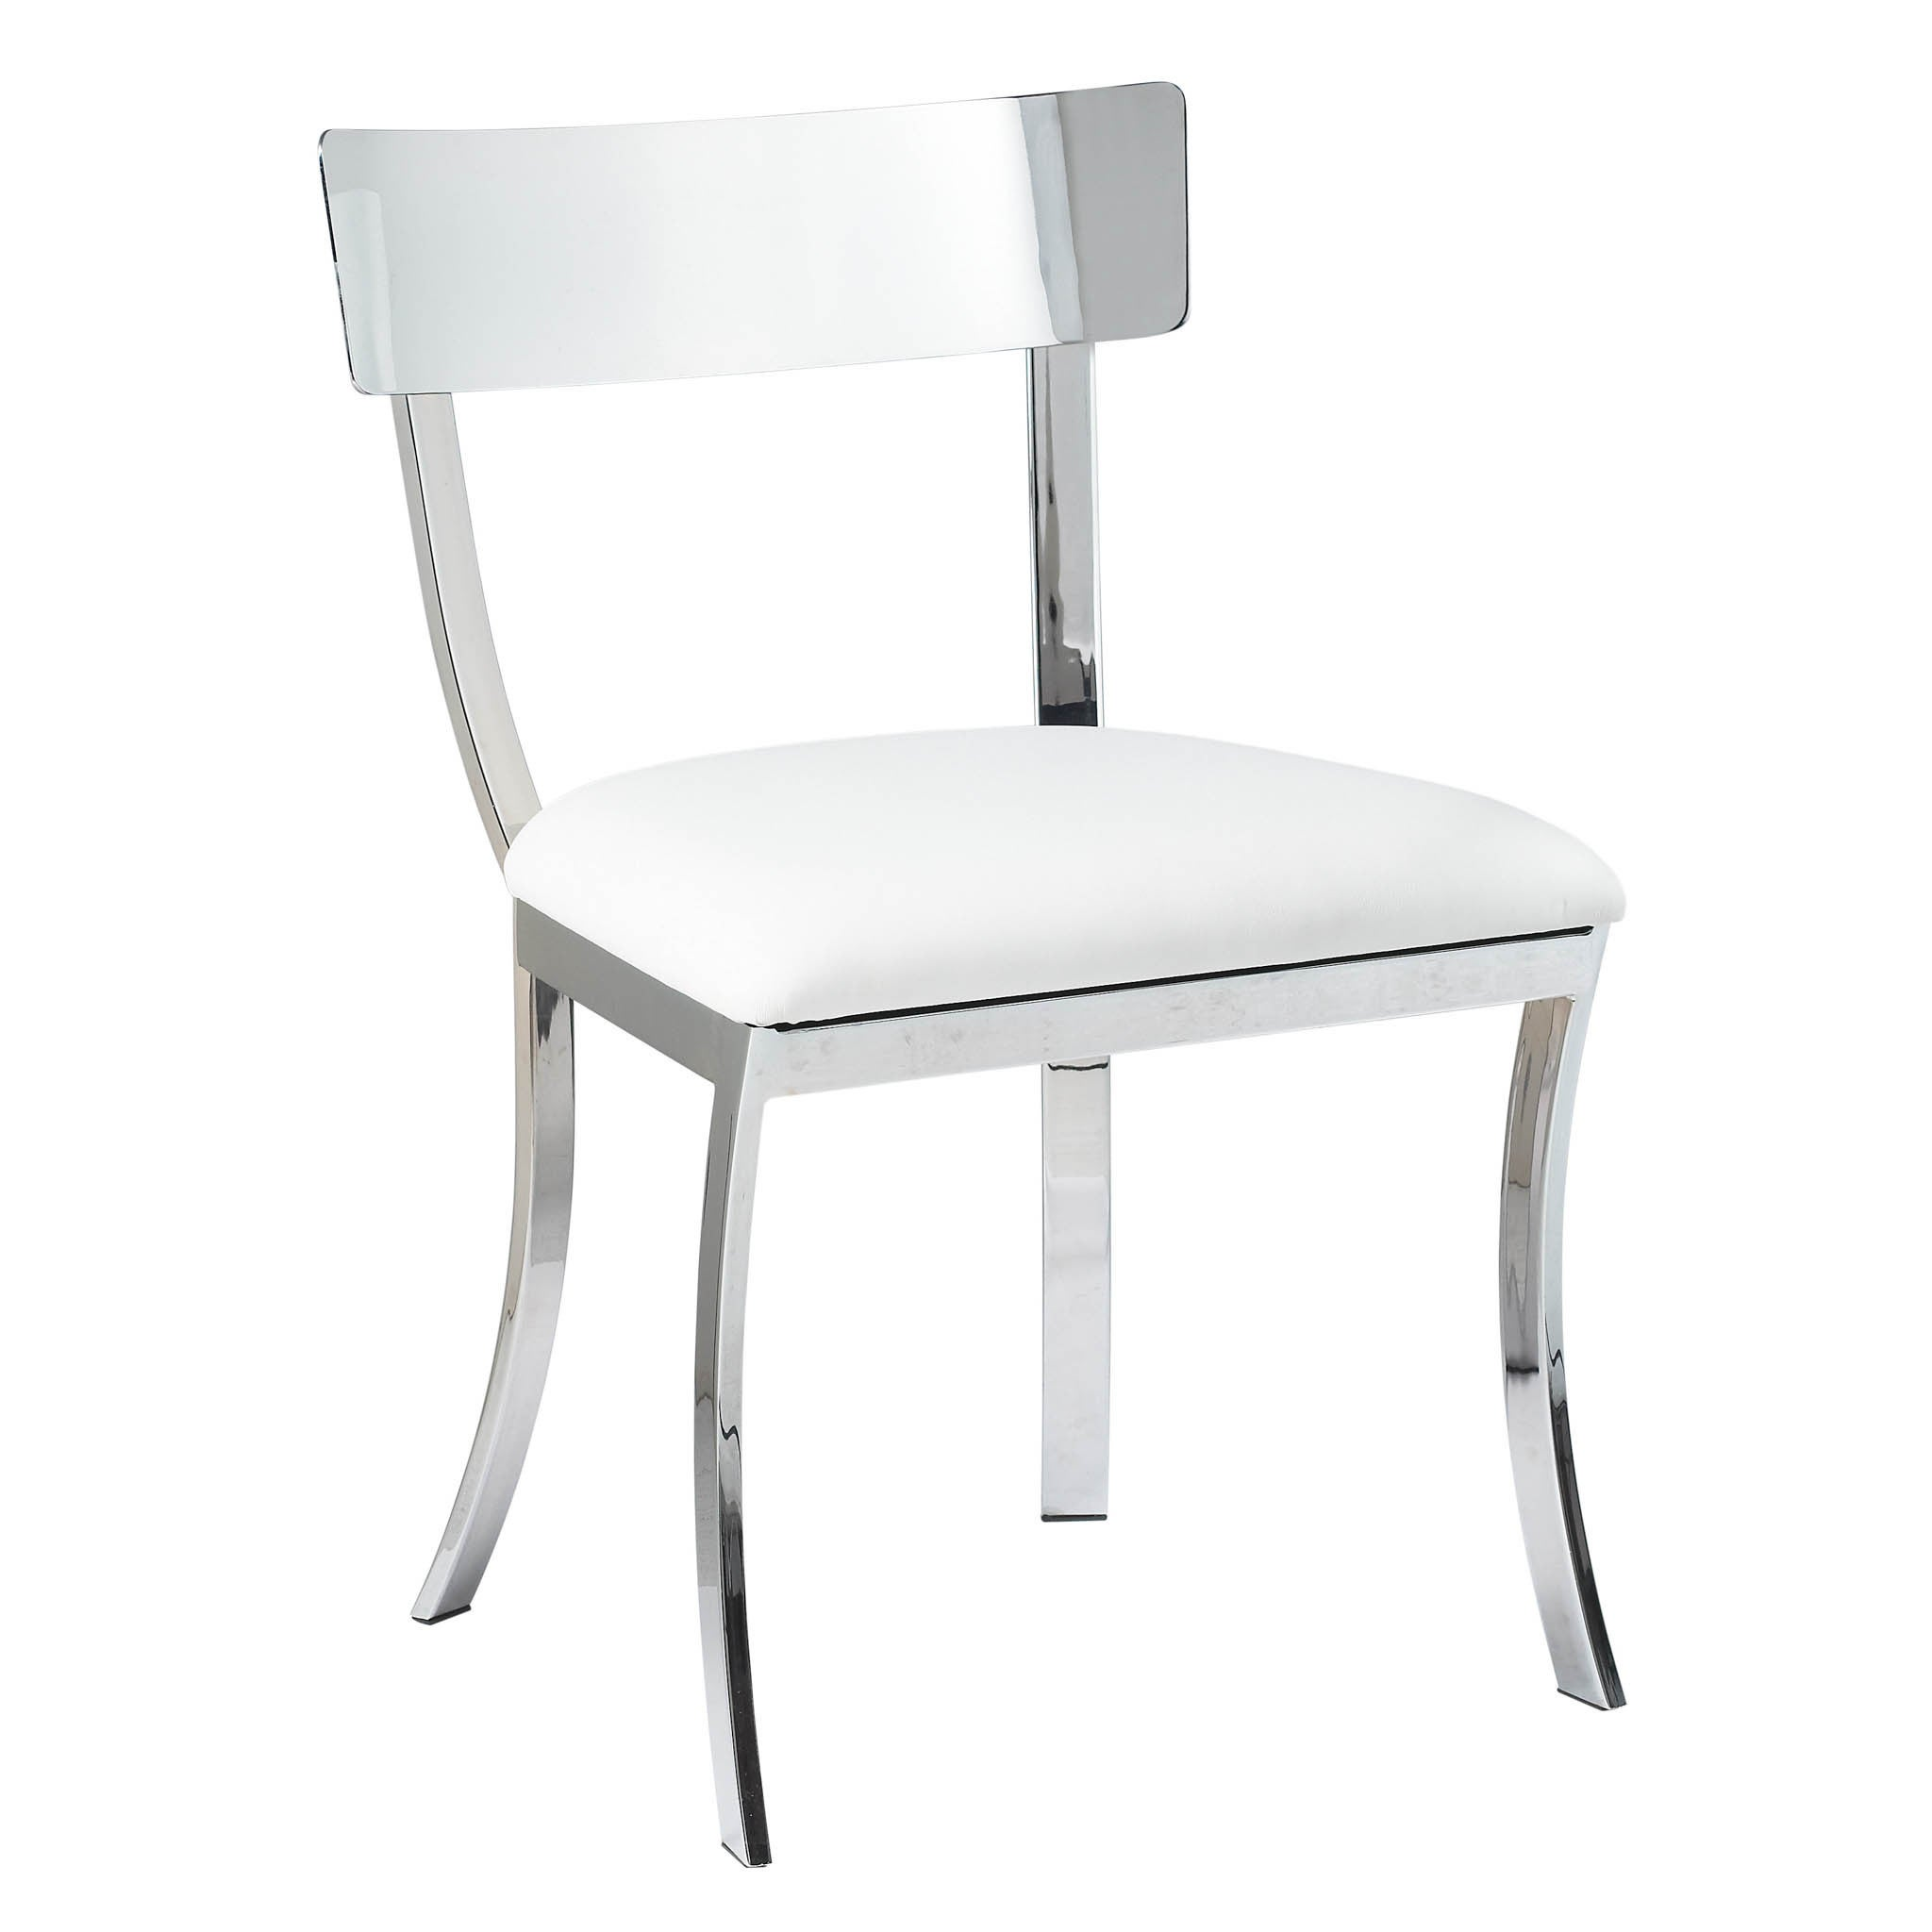 finest selection e2308 11985 Sunpan 'Ikon' Maiden White Stainless Steel Dining Chair (Set of 2) - Medium